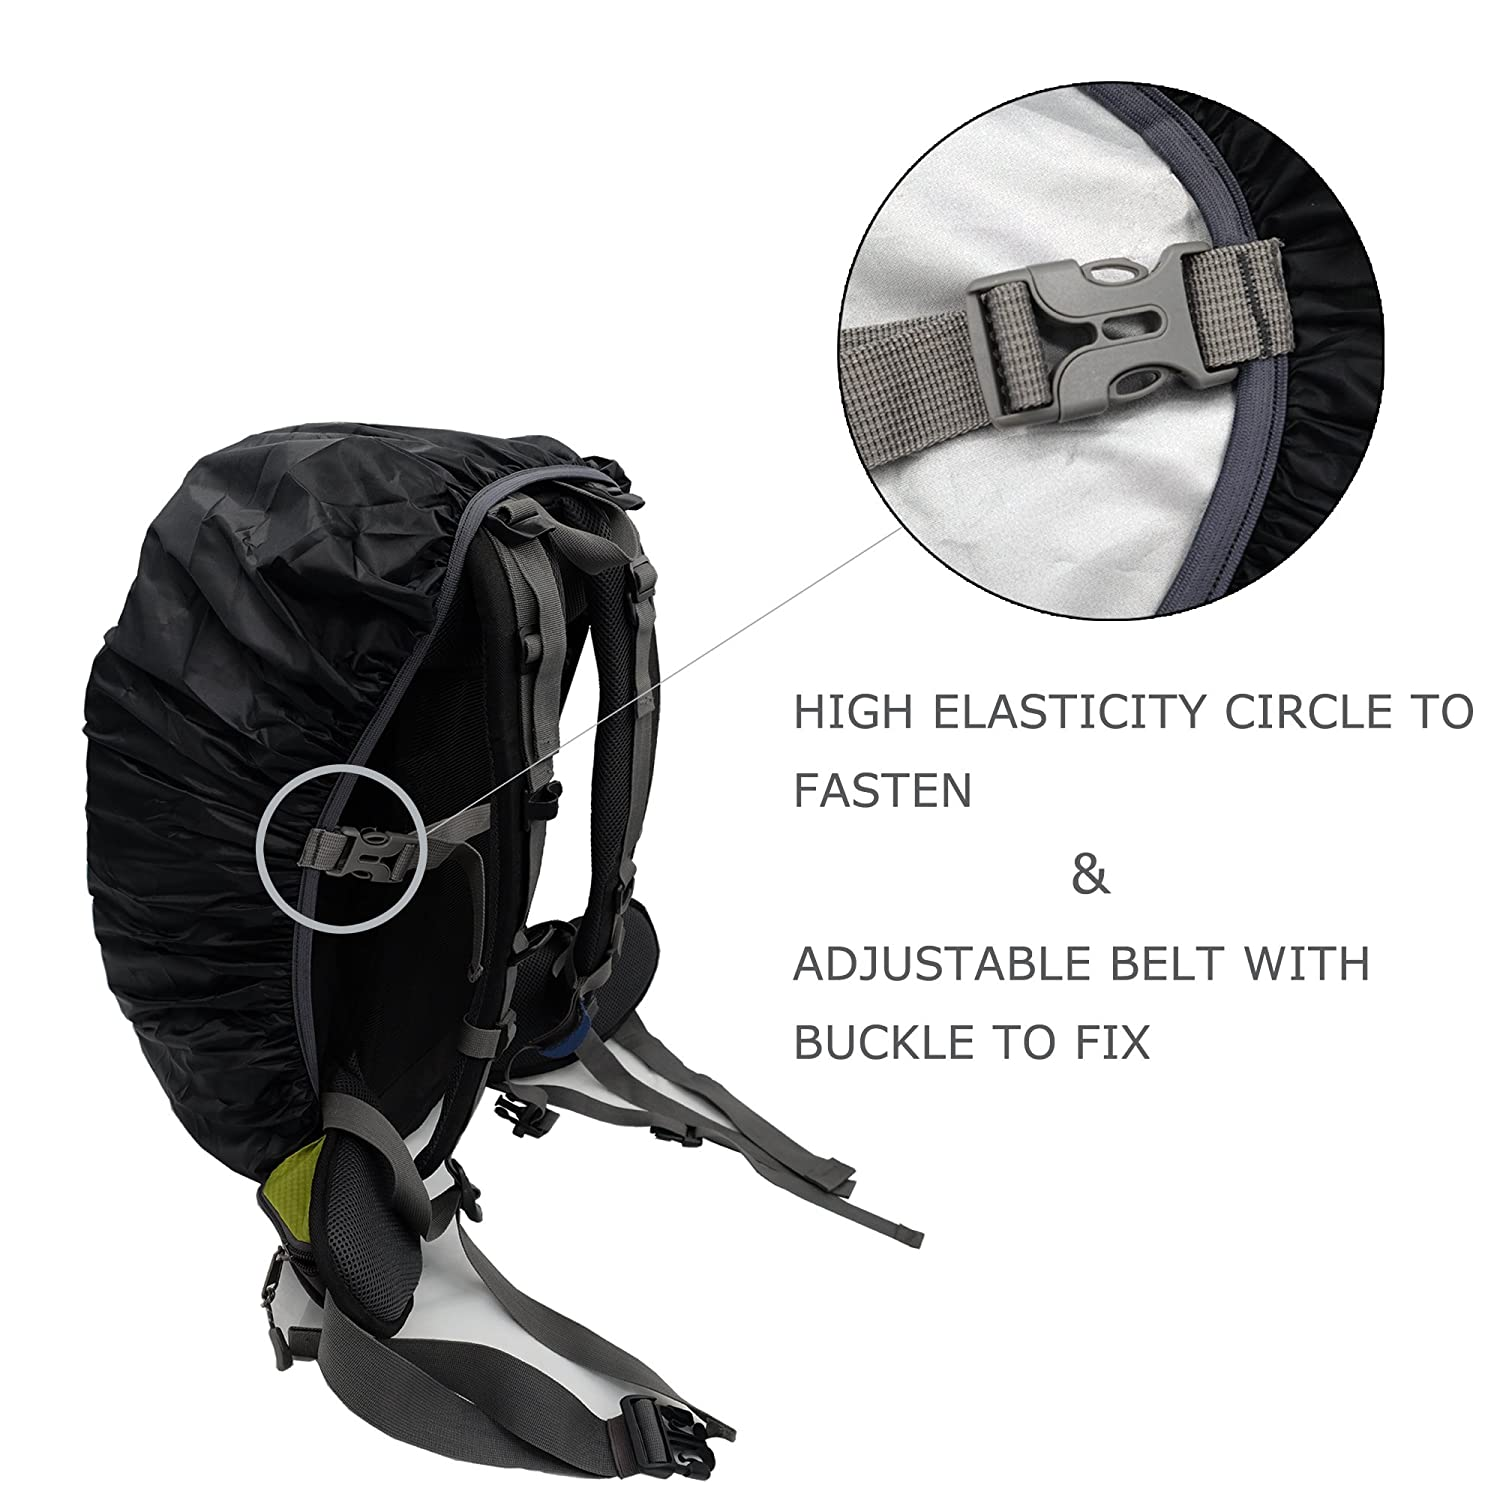 Klong Backpack Rain Cover Waterproof Sunproof Hiking Camping Traveling with Carry Bag